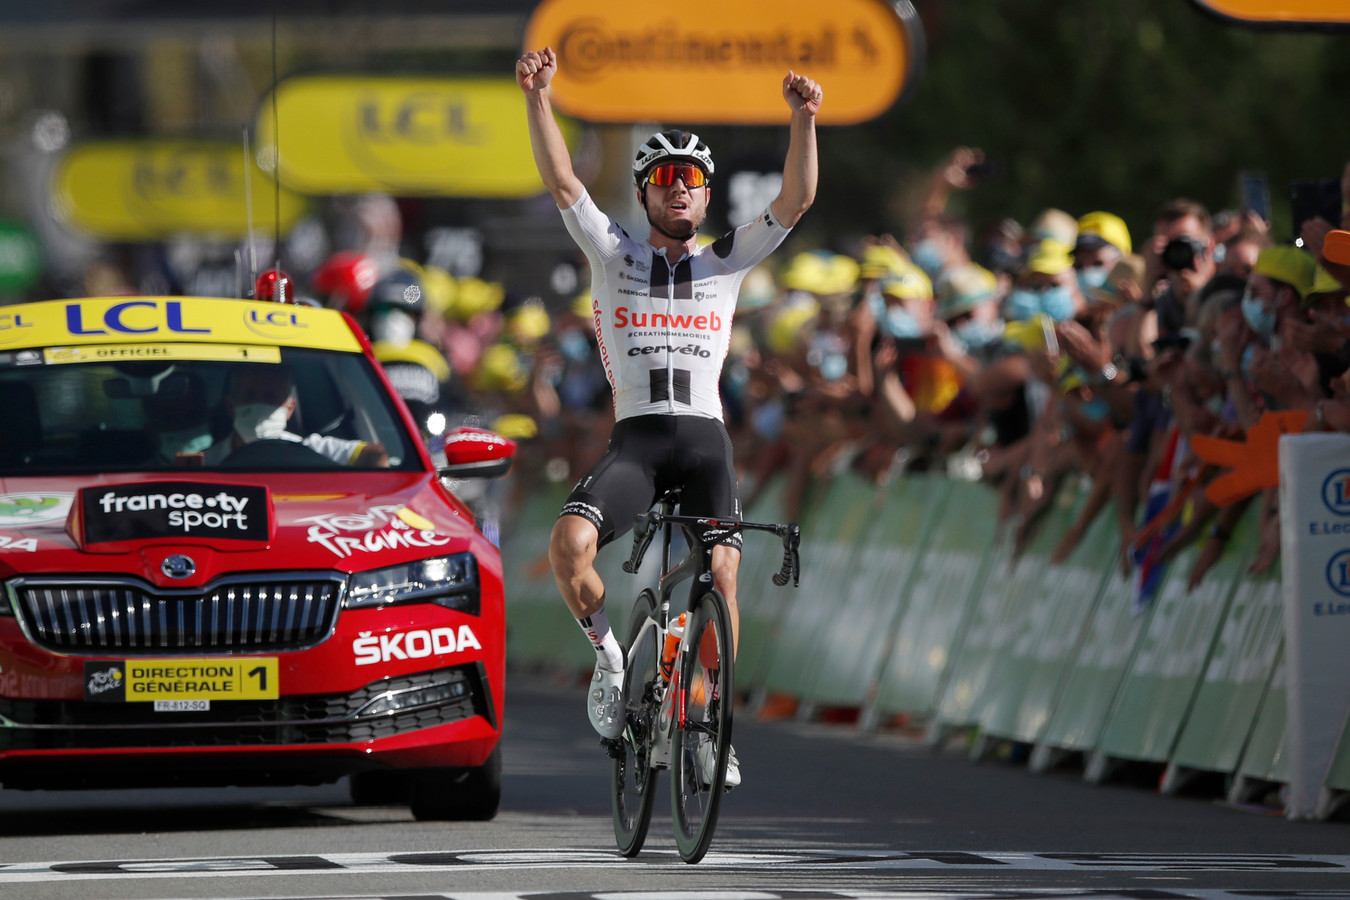 Hirschi wint een etappe in de Tour de France.